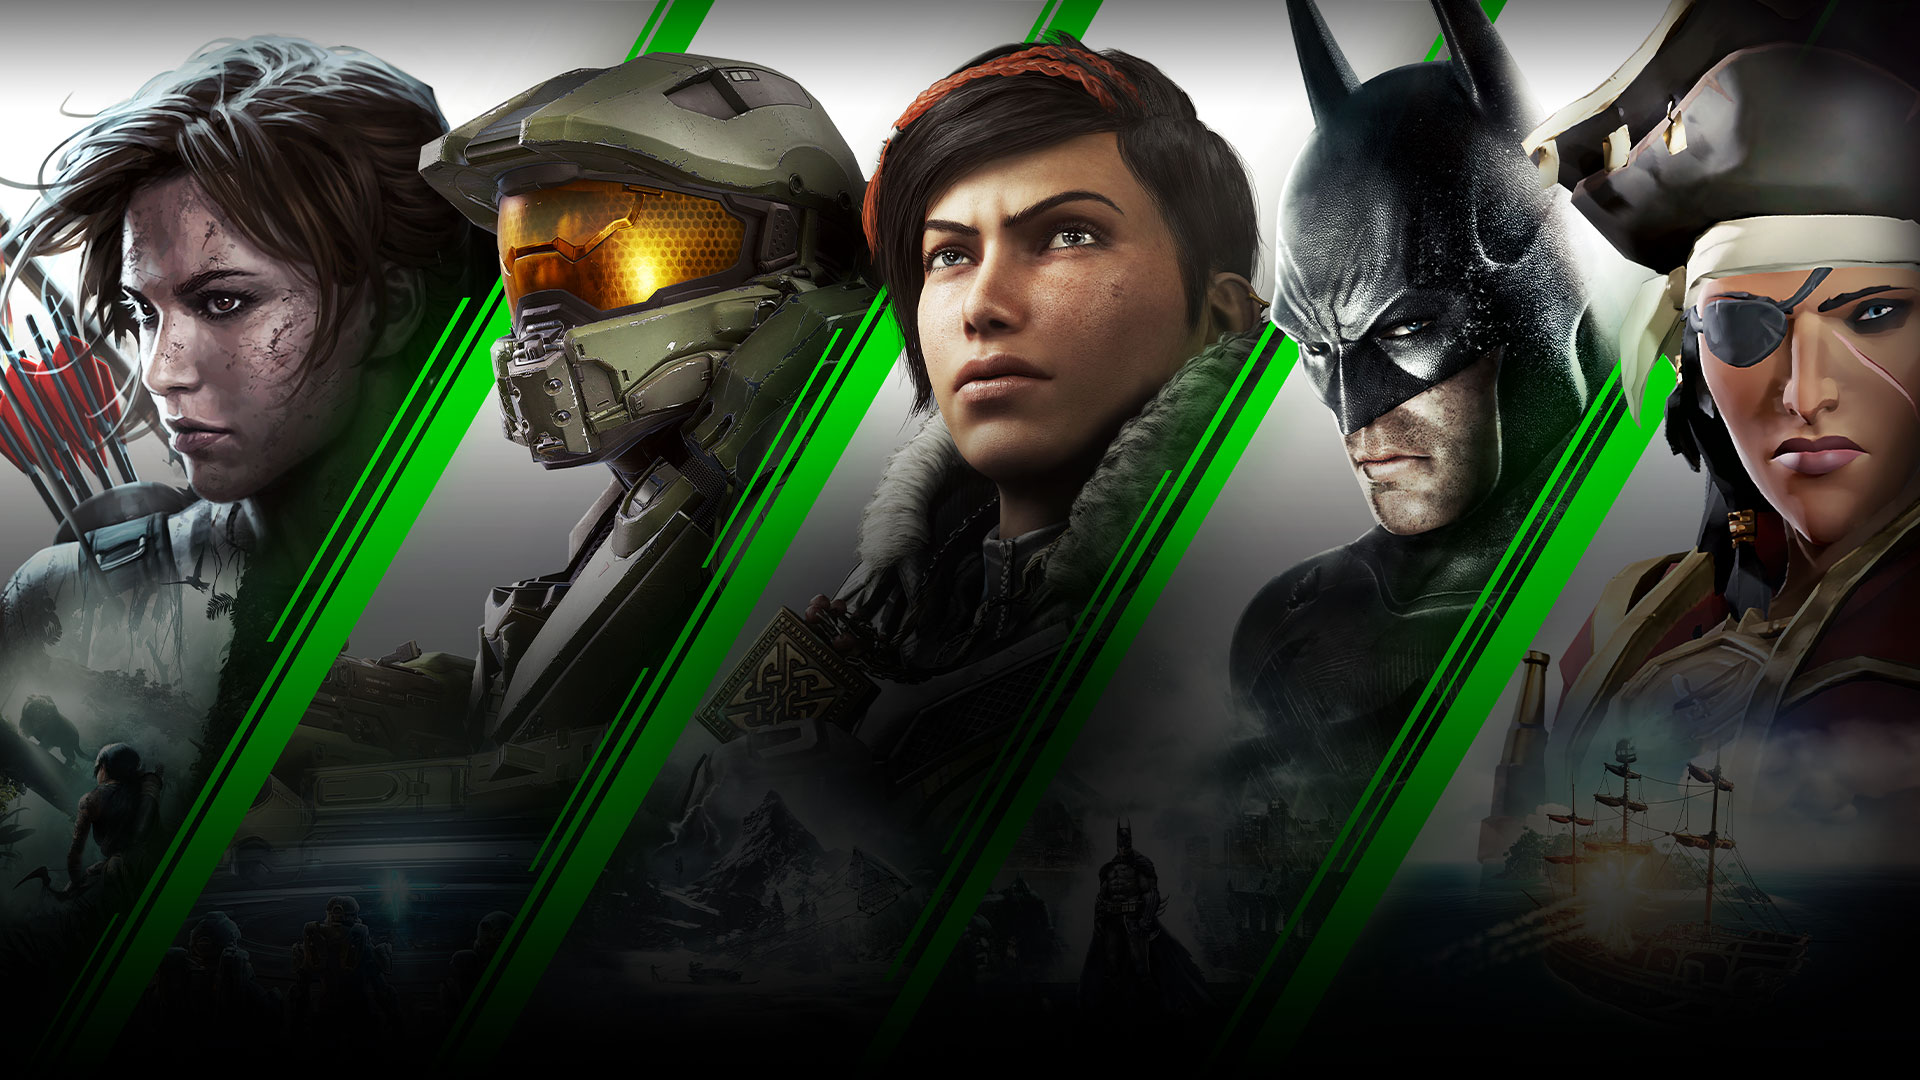 Five game characters snarling into in the distance behind an Xbox Game Pass logo